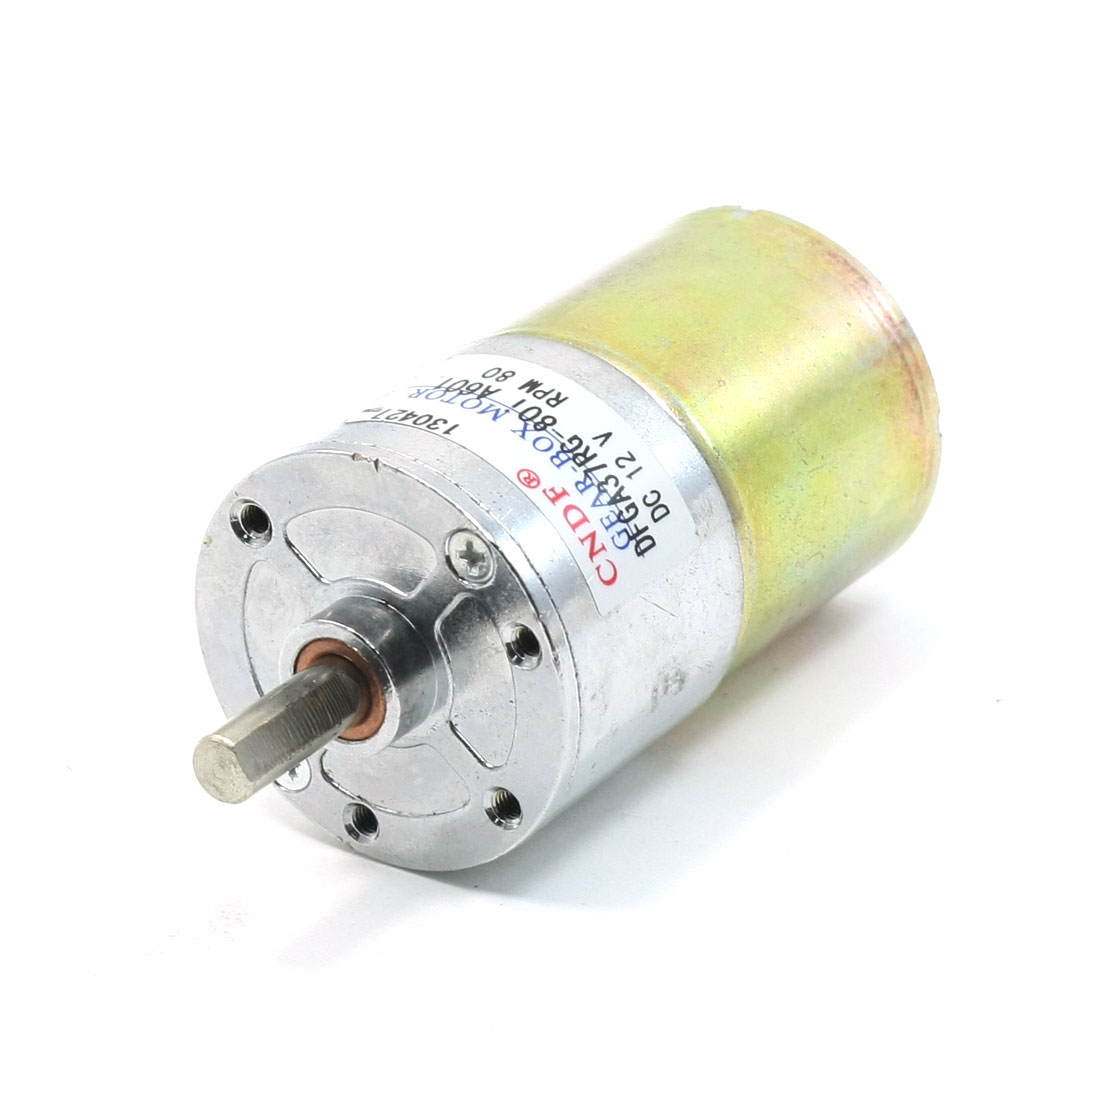 80RPM Speed 6mm Diameter Shaft 2 Terminals Geared Motor DC 12V